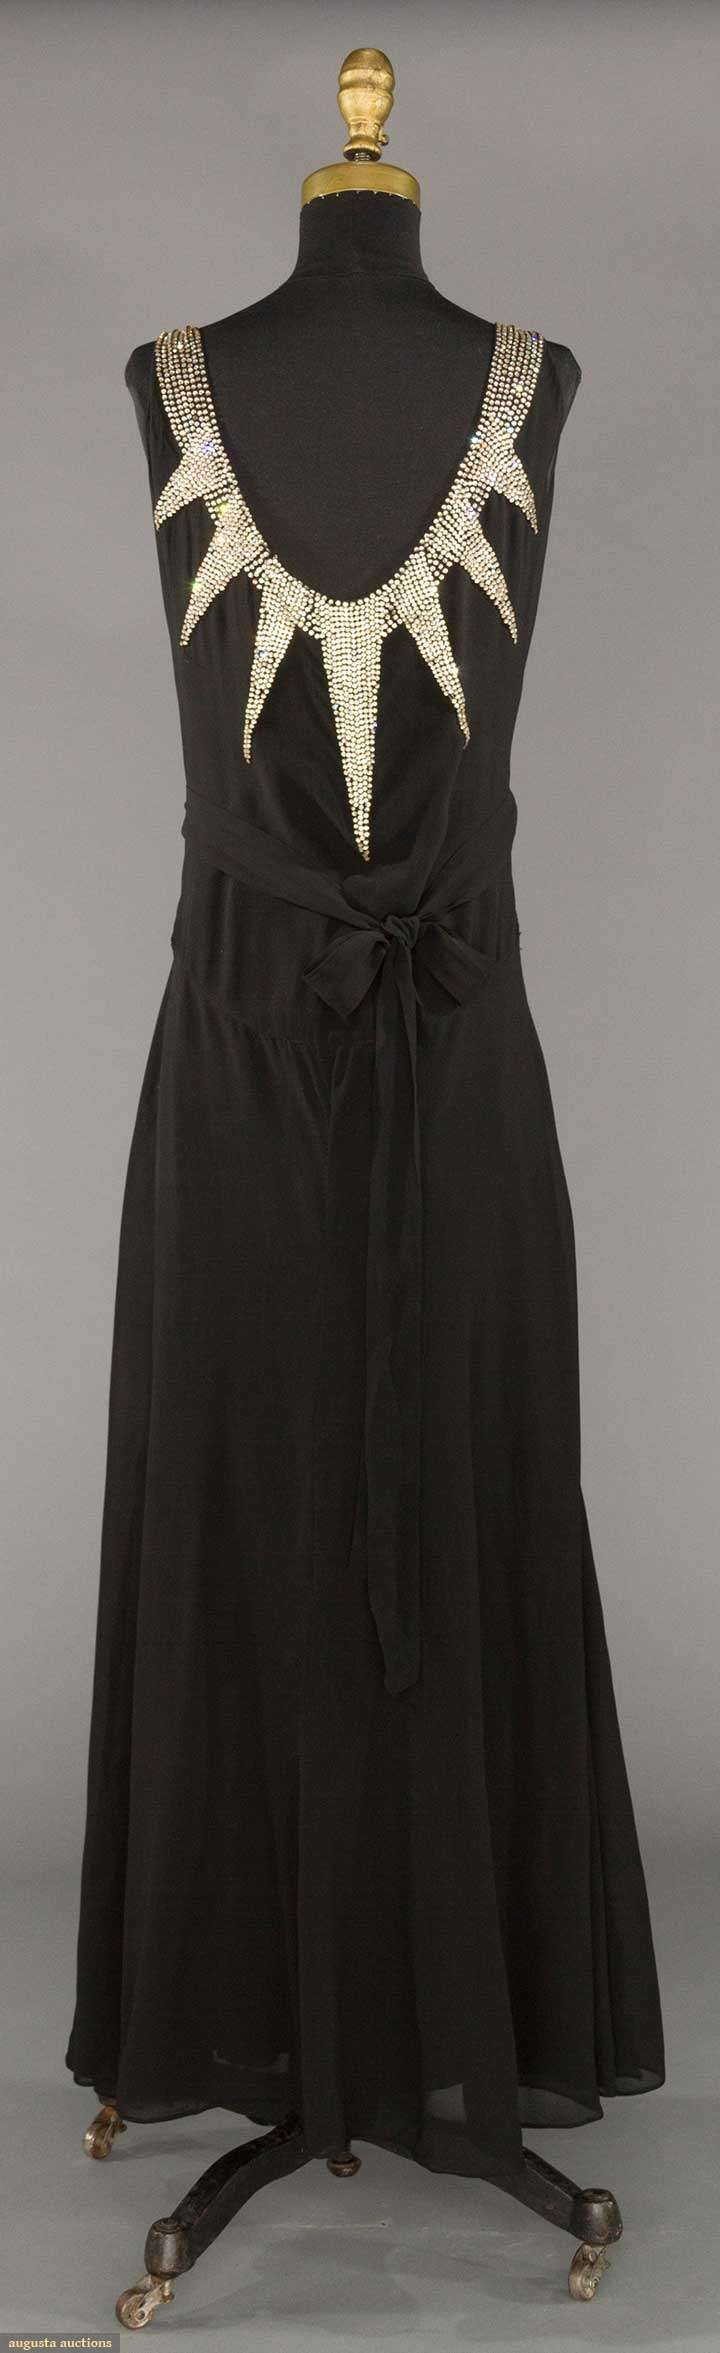 RHINESTONE DECO EVENING DRESS, 1930s  Black silk chiffon w/ wide Deco pattern rhinestone bands, gored skirt (back view)